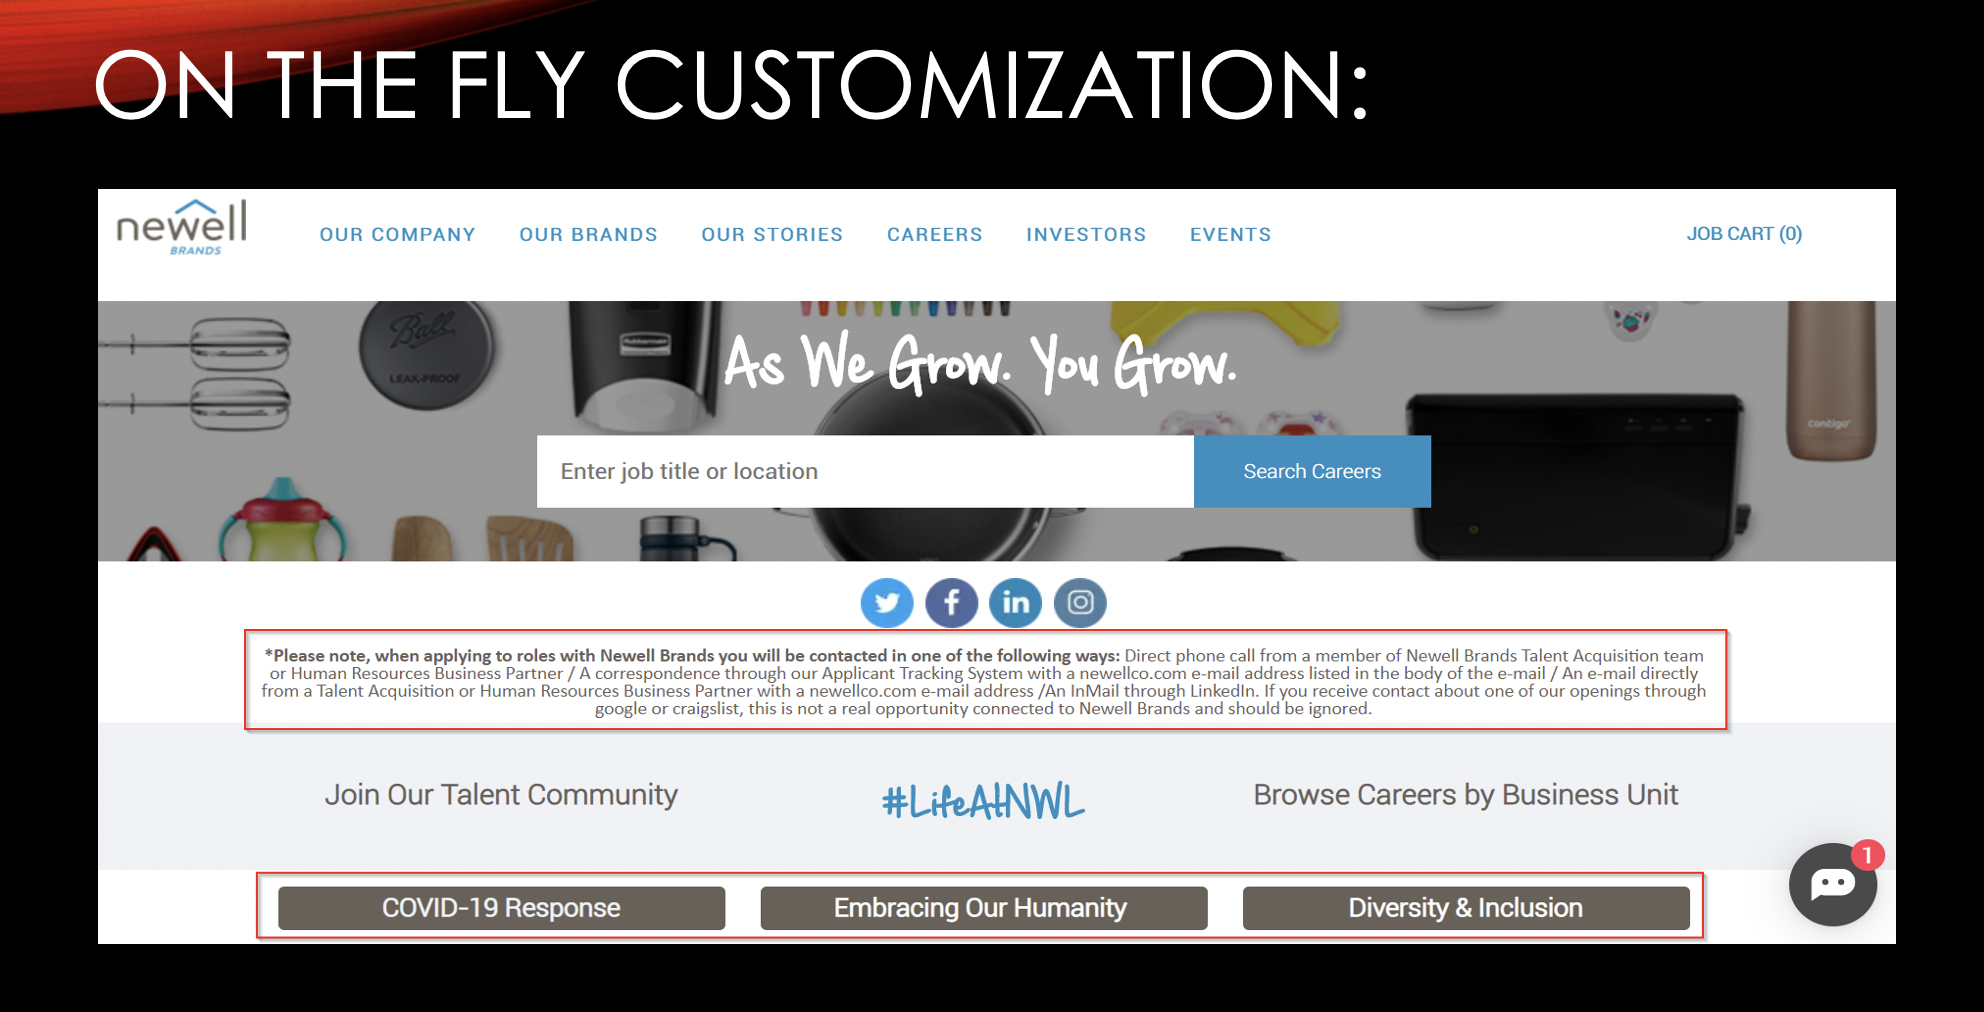 Example of on-the-fly customization on career site